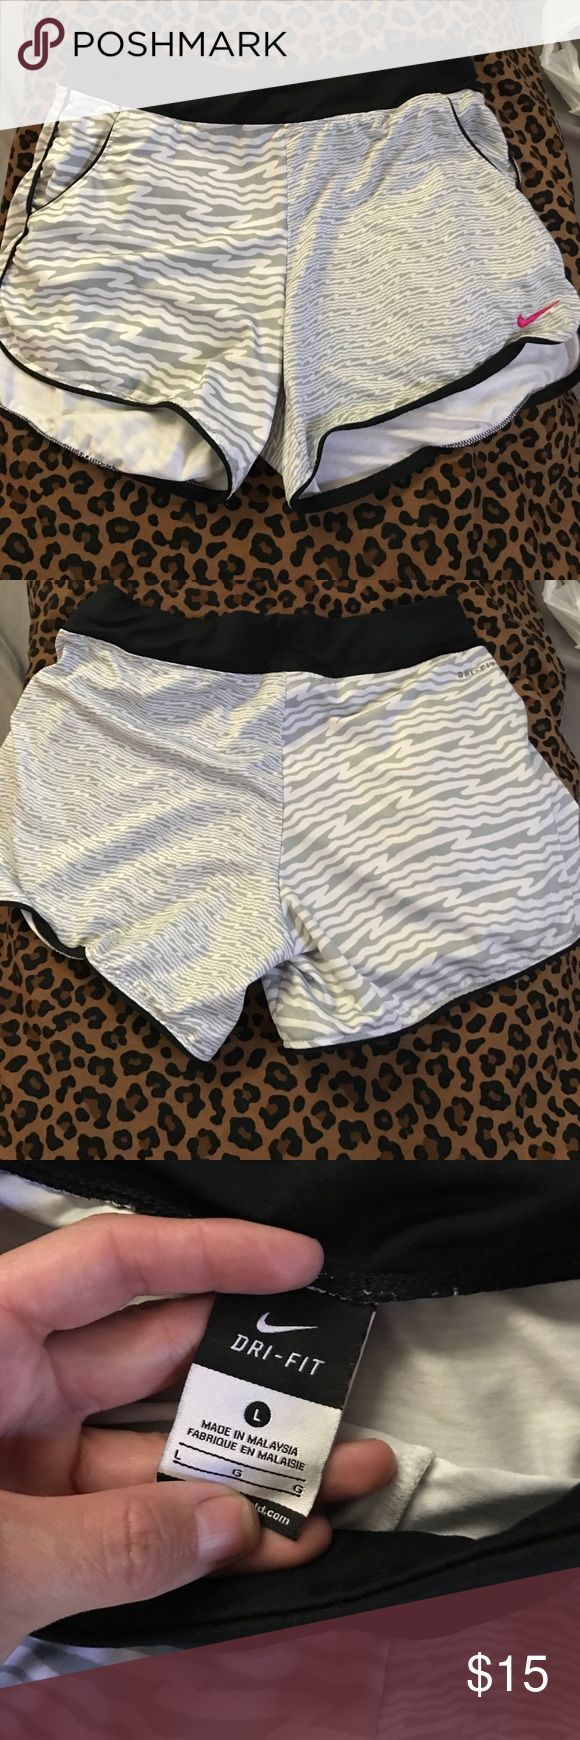 Nike dri fit shorts! Very good condition. Size large dri fit shorts:) Nike Shorts